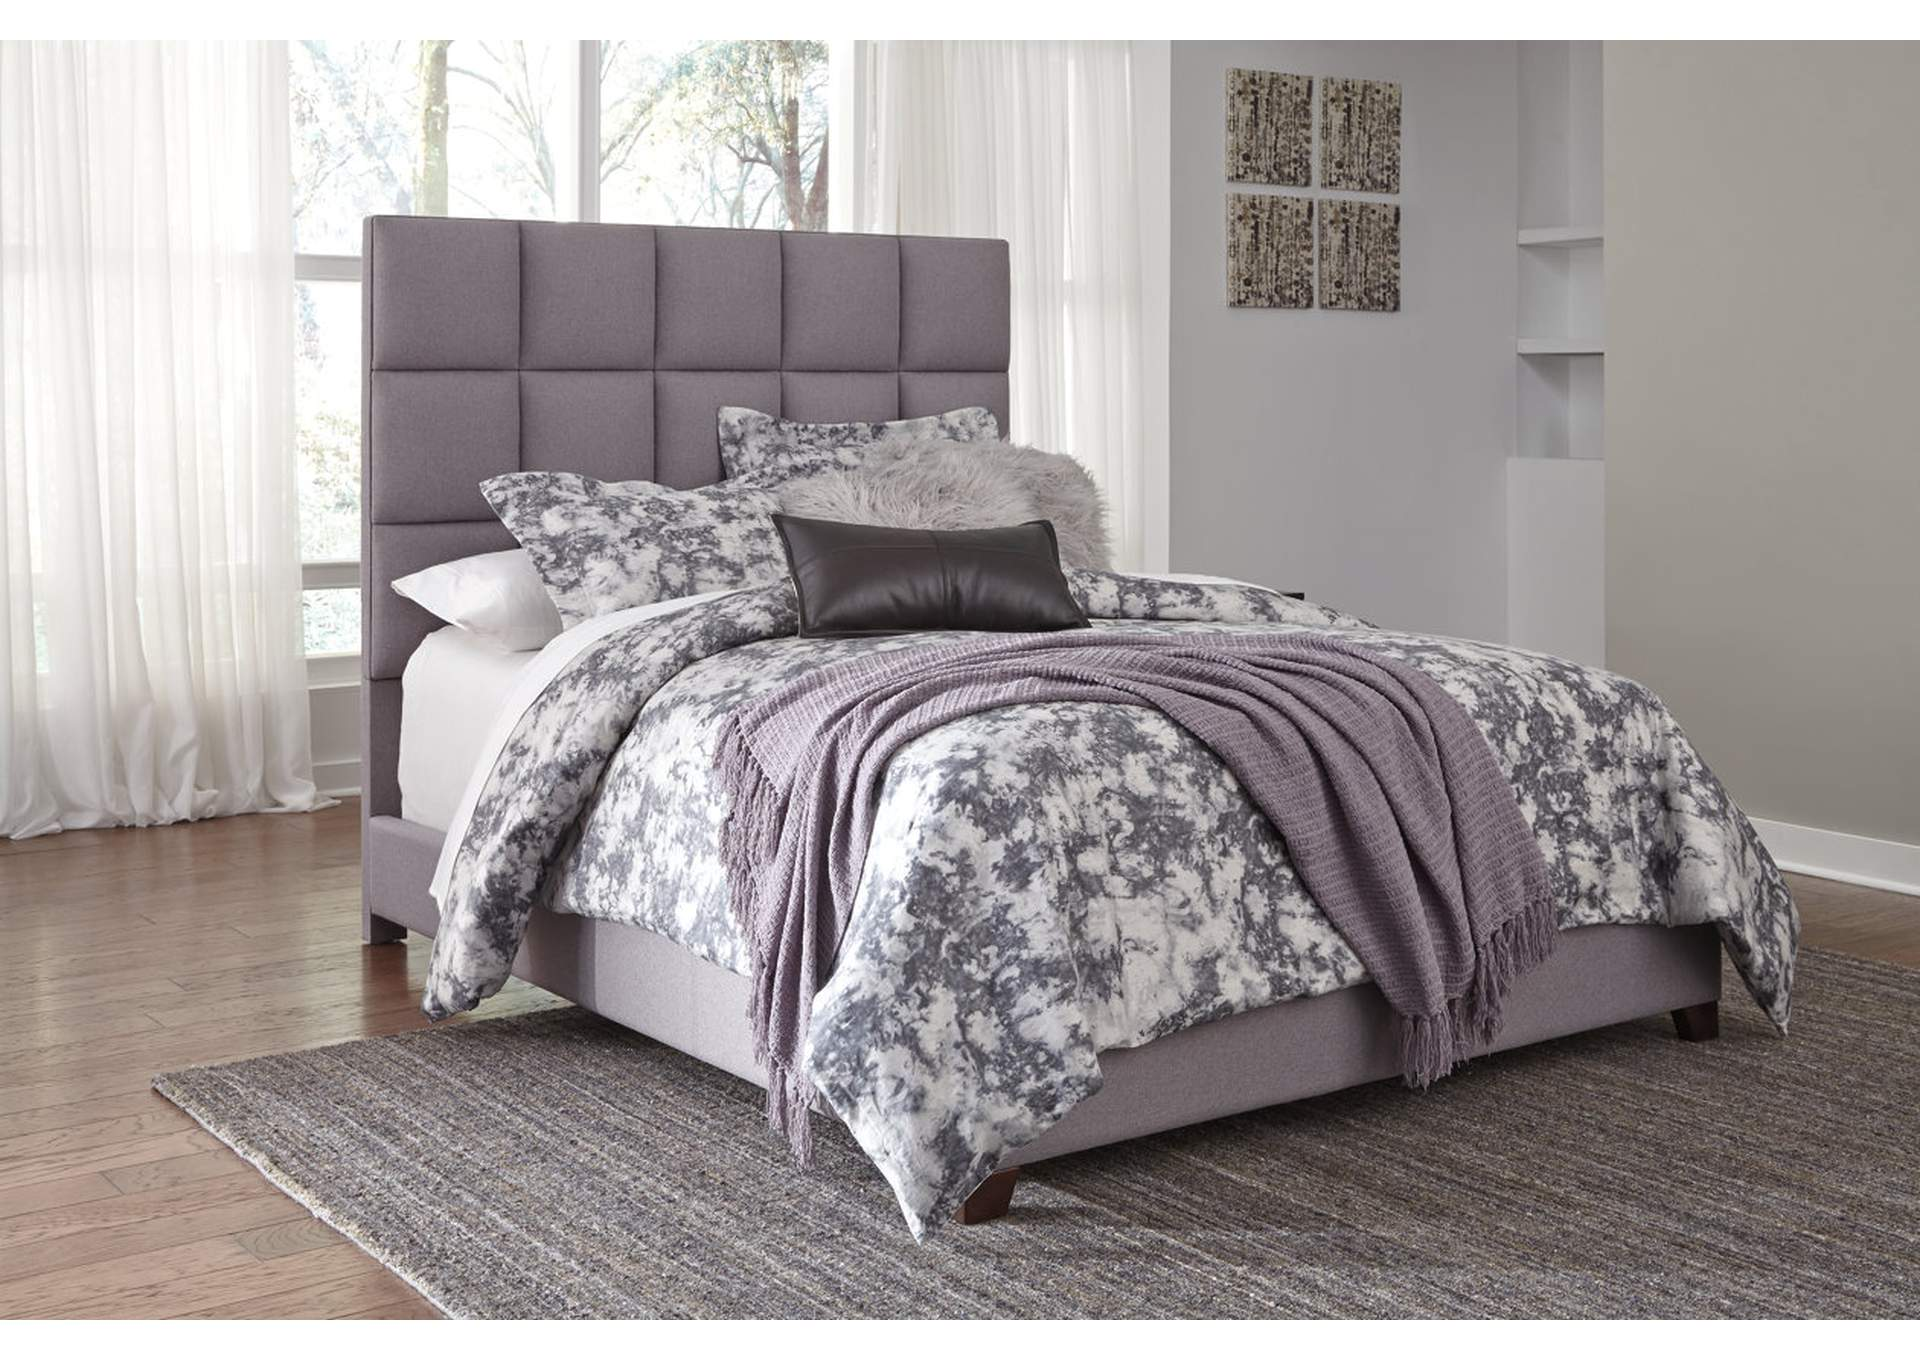 Queen Upholstered Bed,ABF Signature Design by Ashley